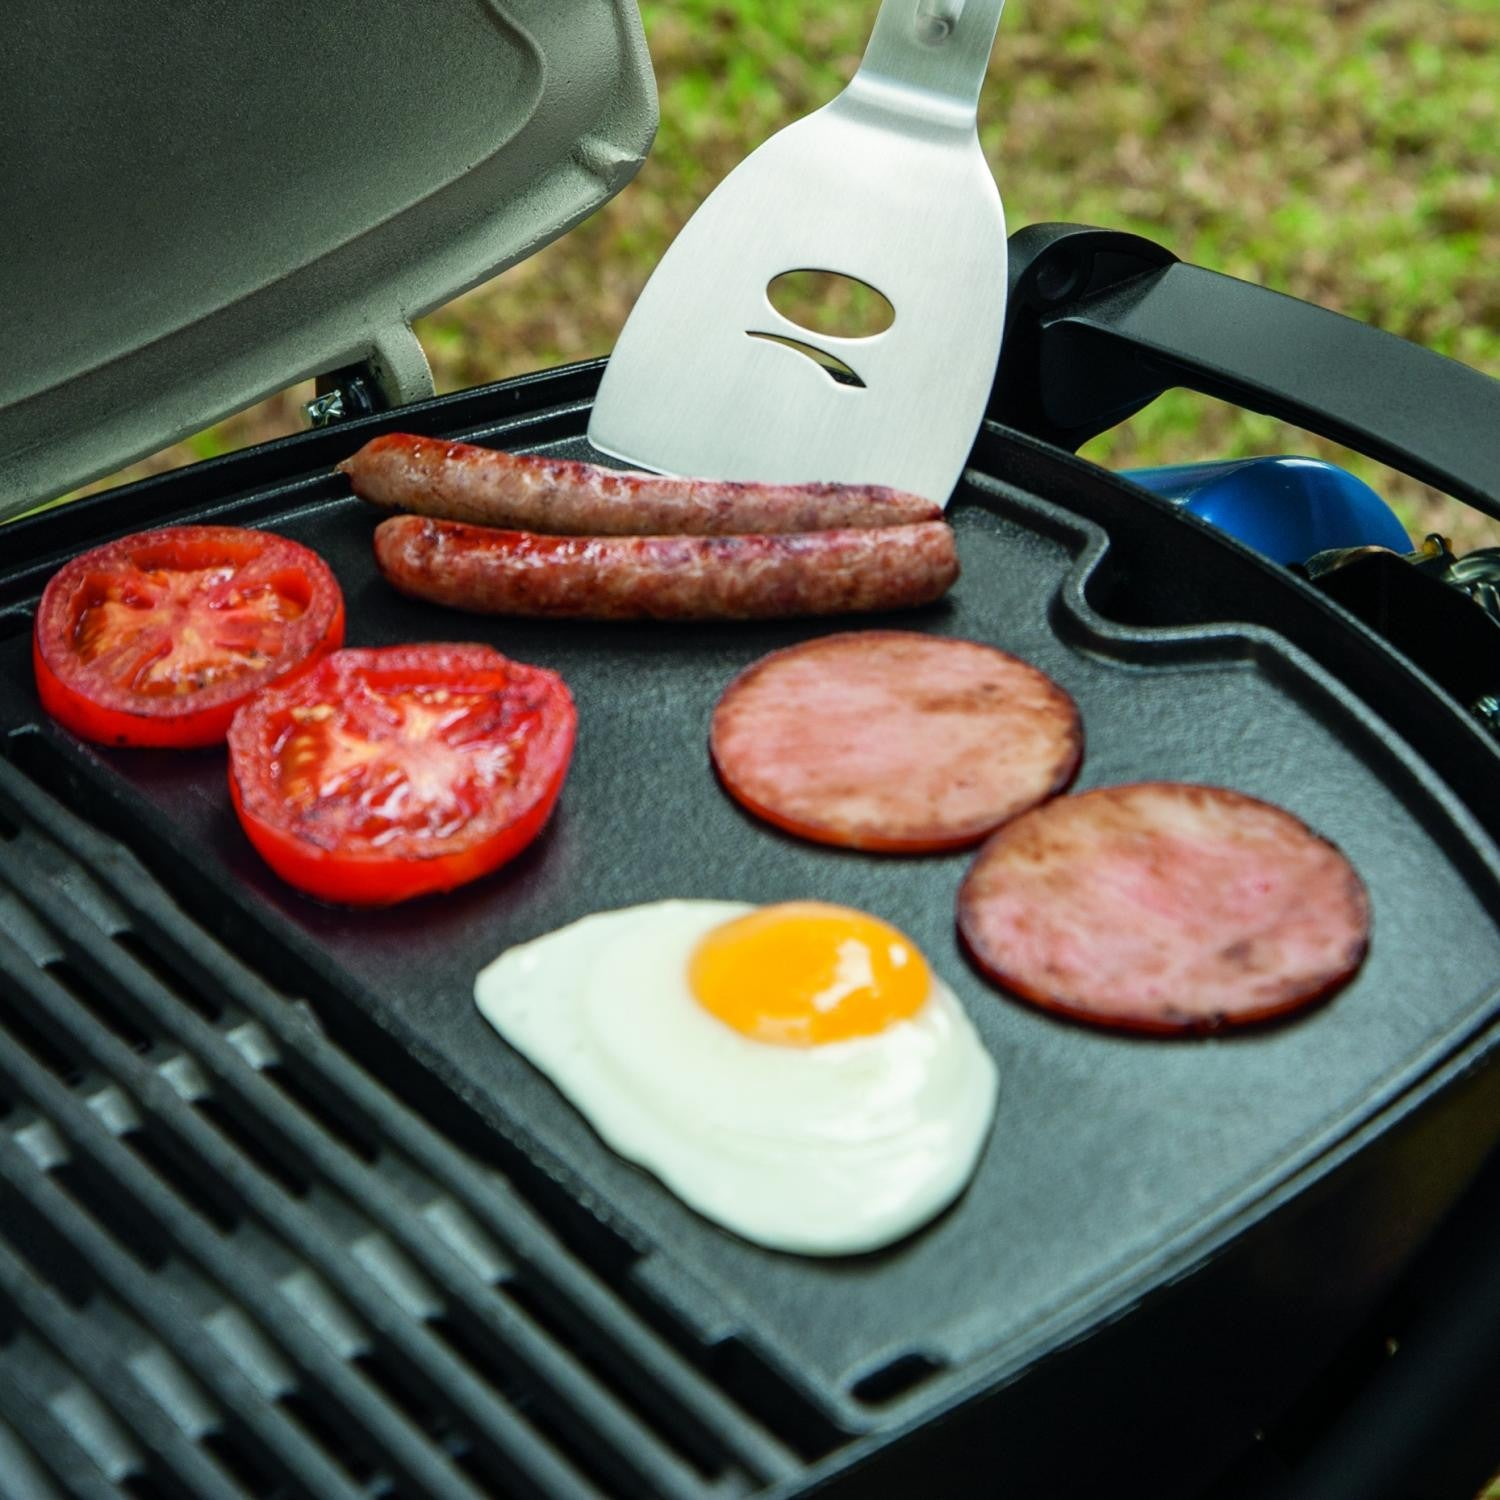 Weber 6558 Porcelain-Enameled Cast Iron BBQ Griddle For Q 100/1000 Portable Gas Grills